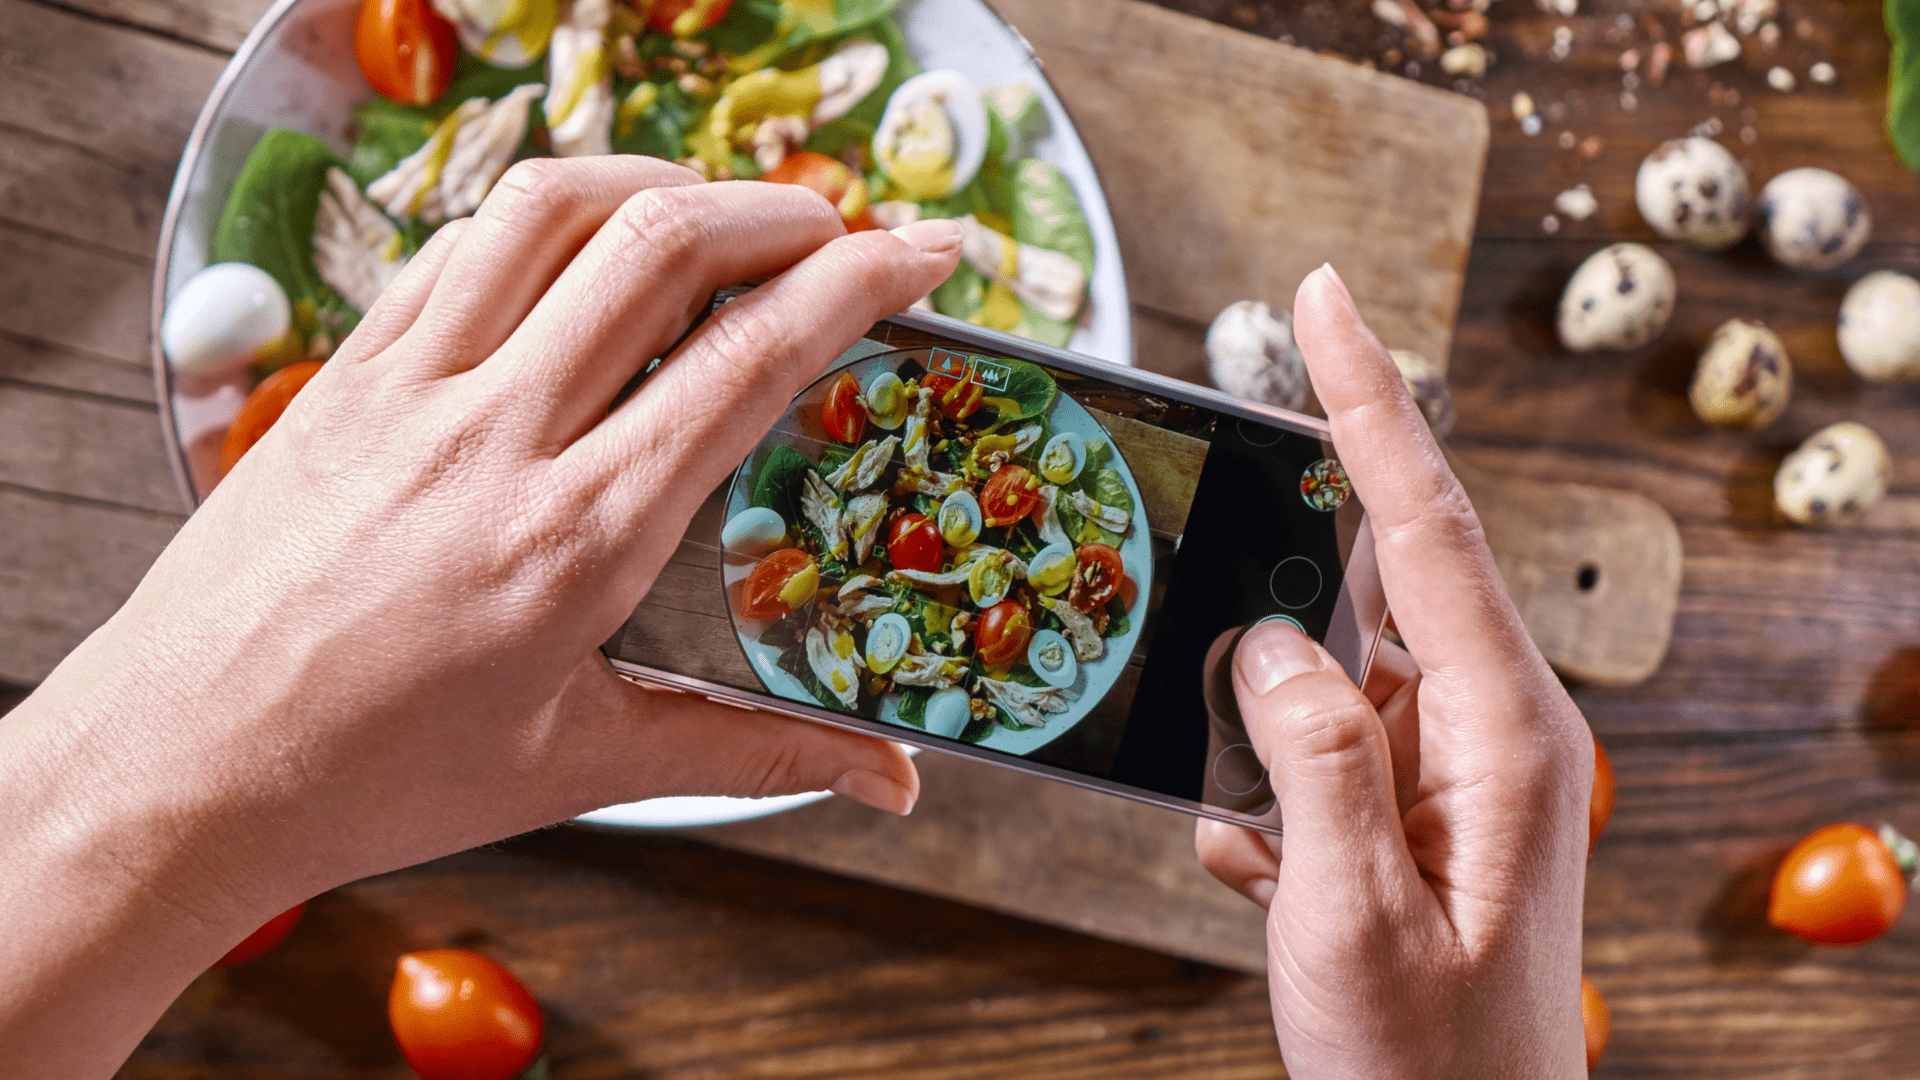 How to become a Food blogger